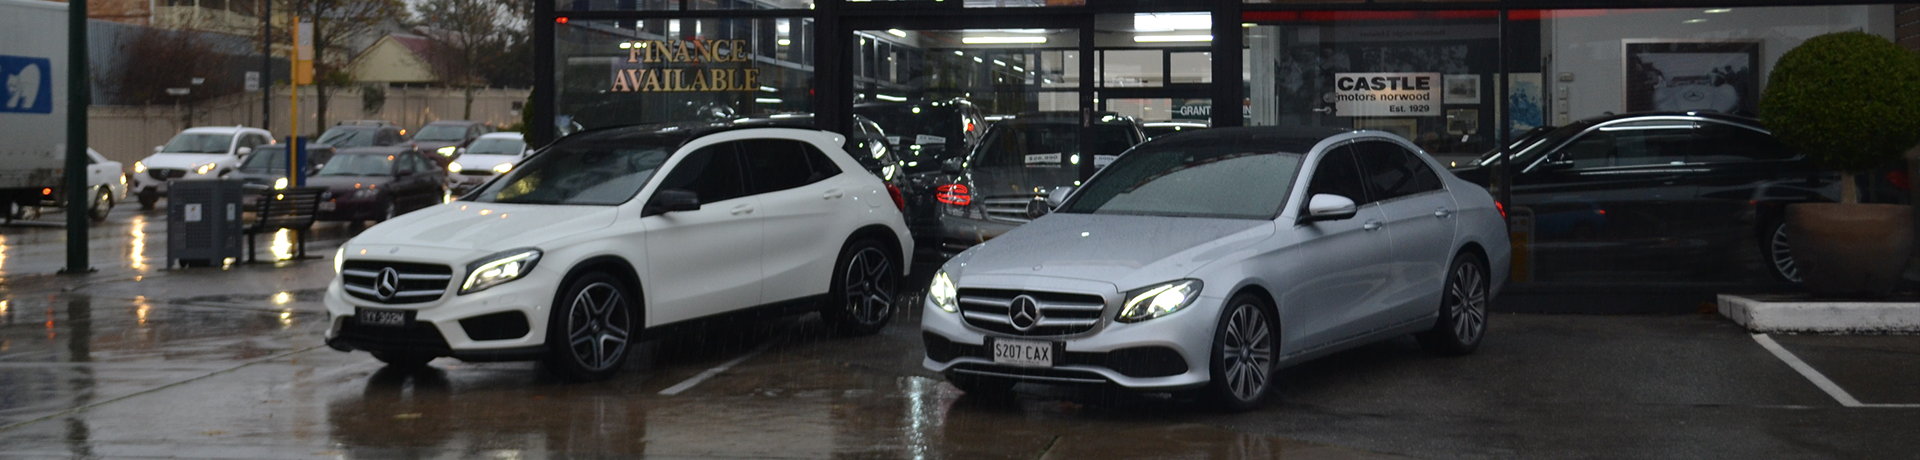 Prestige car dealer adelaide